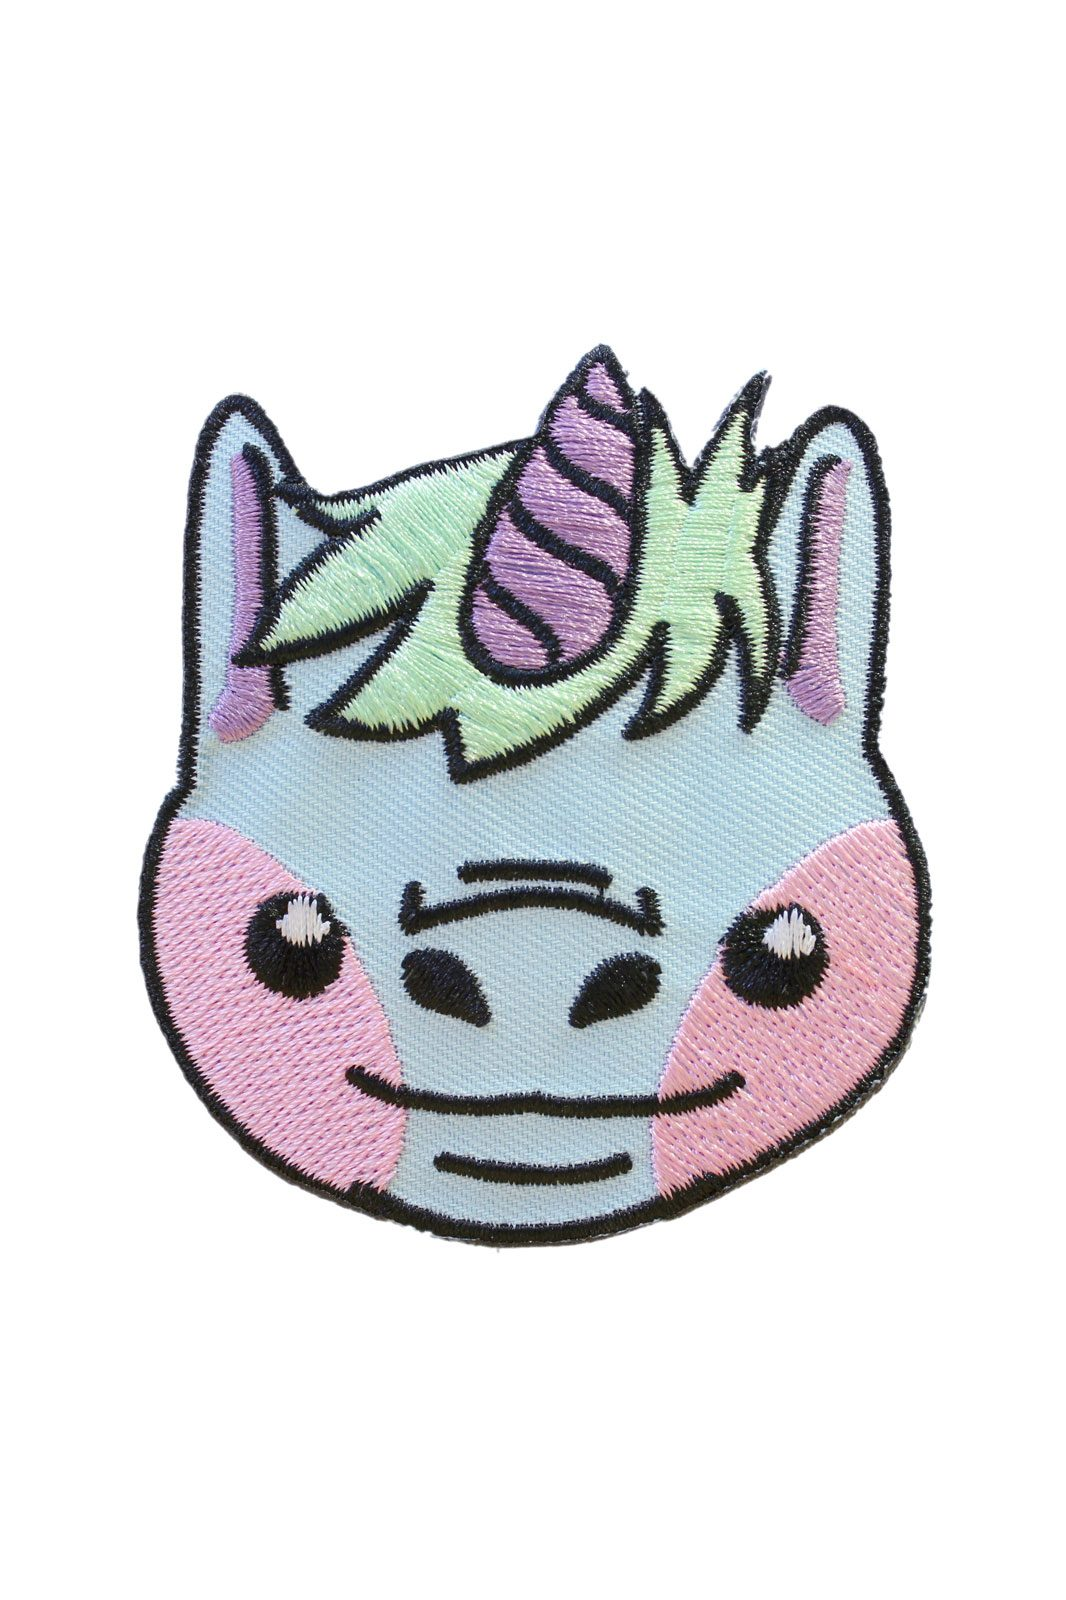 Kawaii Unicorn Patch